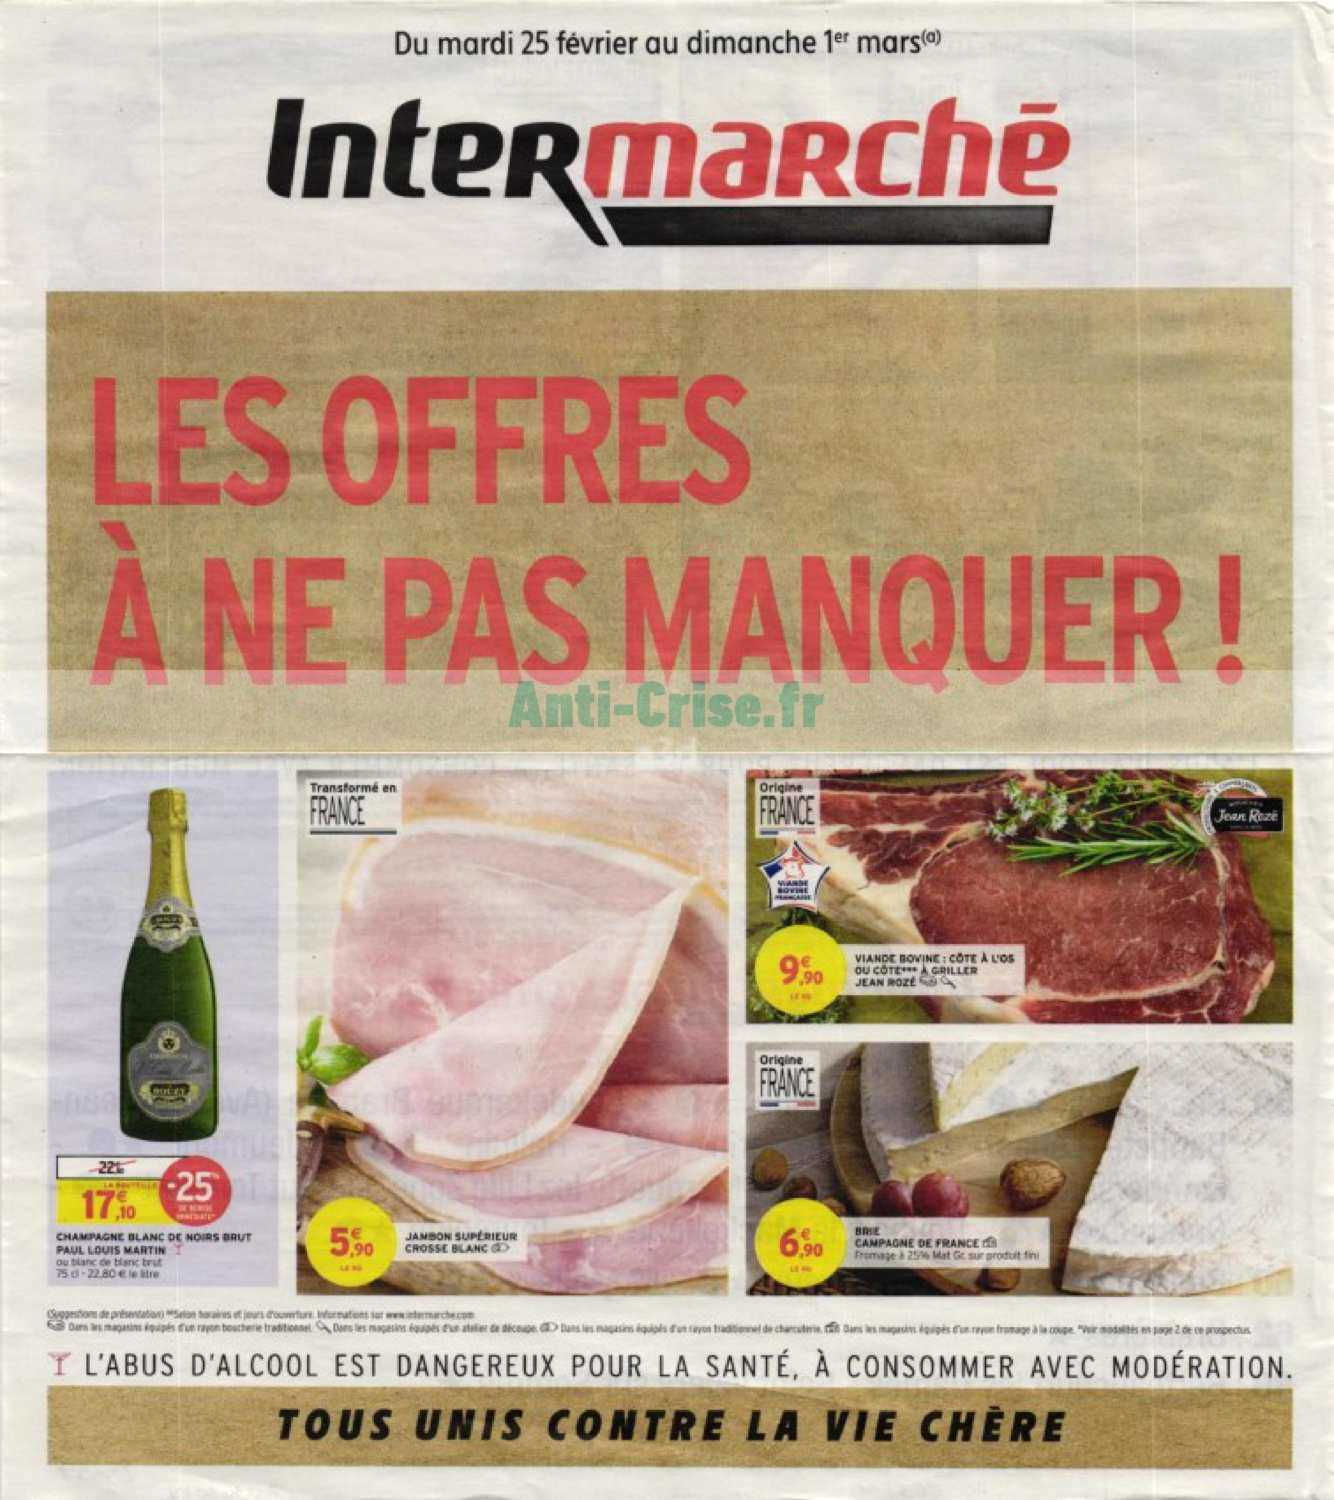 https://media.anti-crise.fr/2020/02/mars2020intermarche2502202001032020S0C0nord-1-1-267x300.jpg